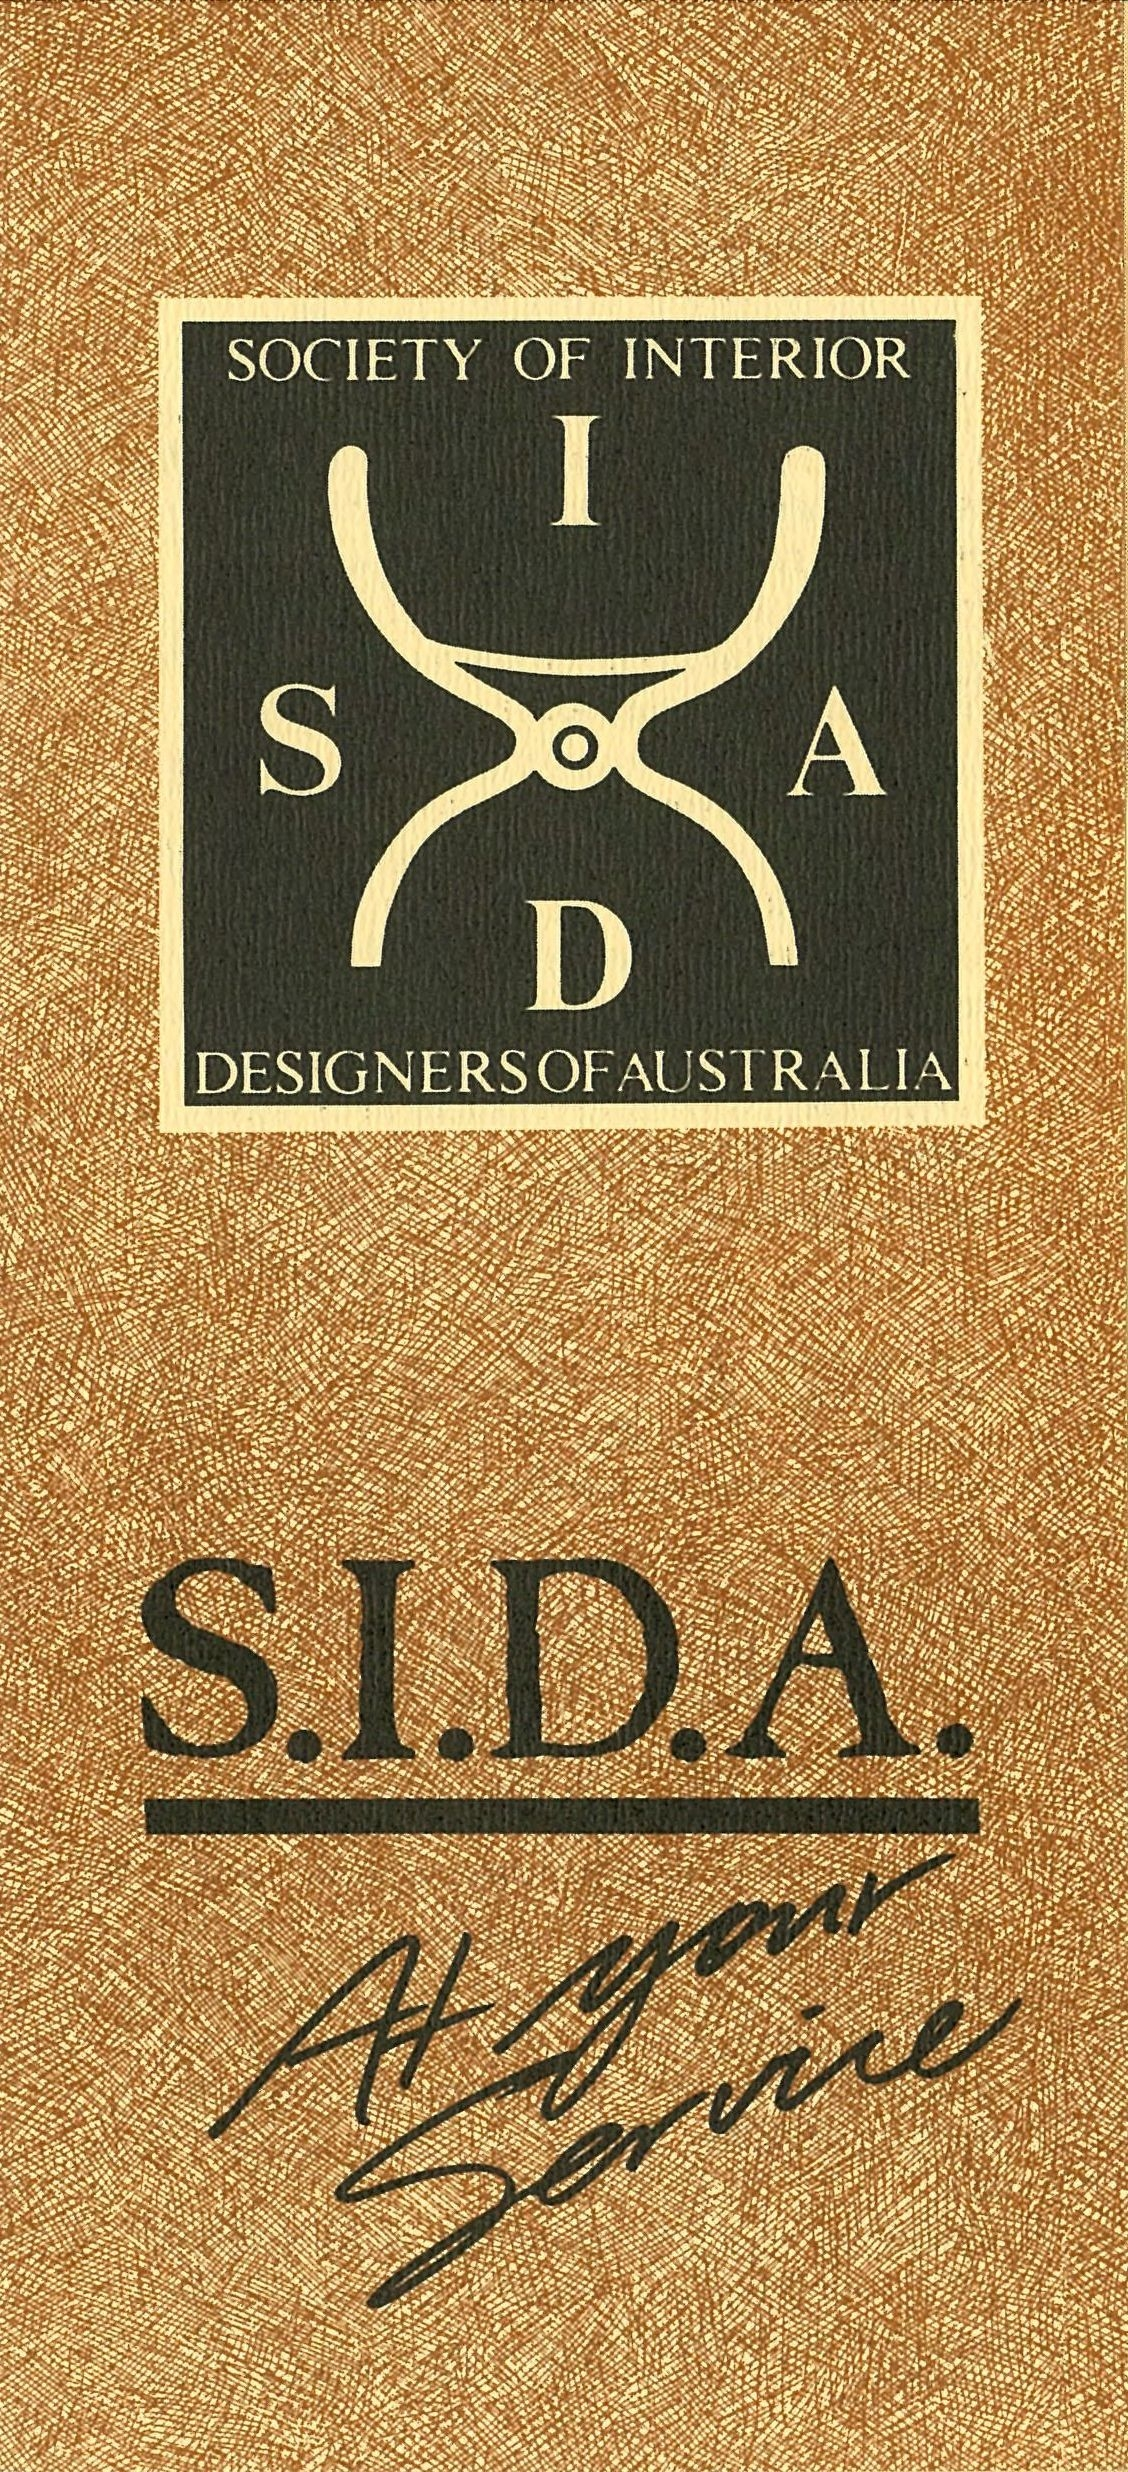 SIDA 'At your service'